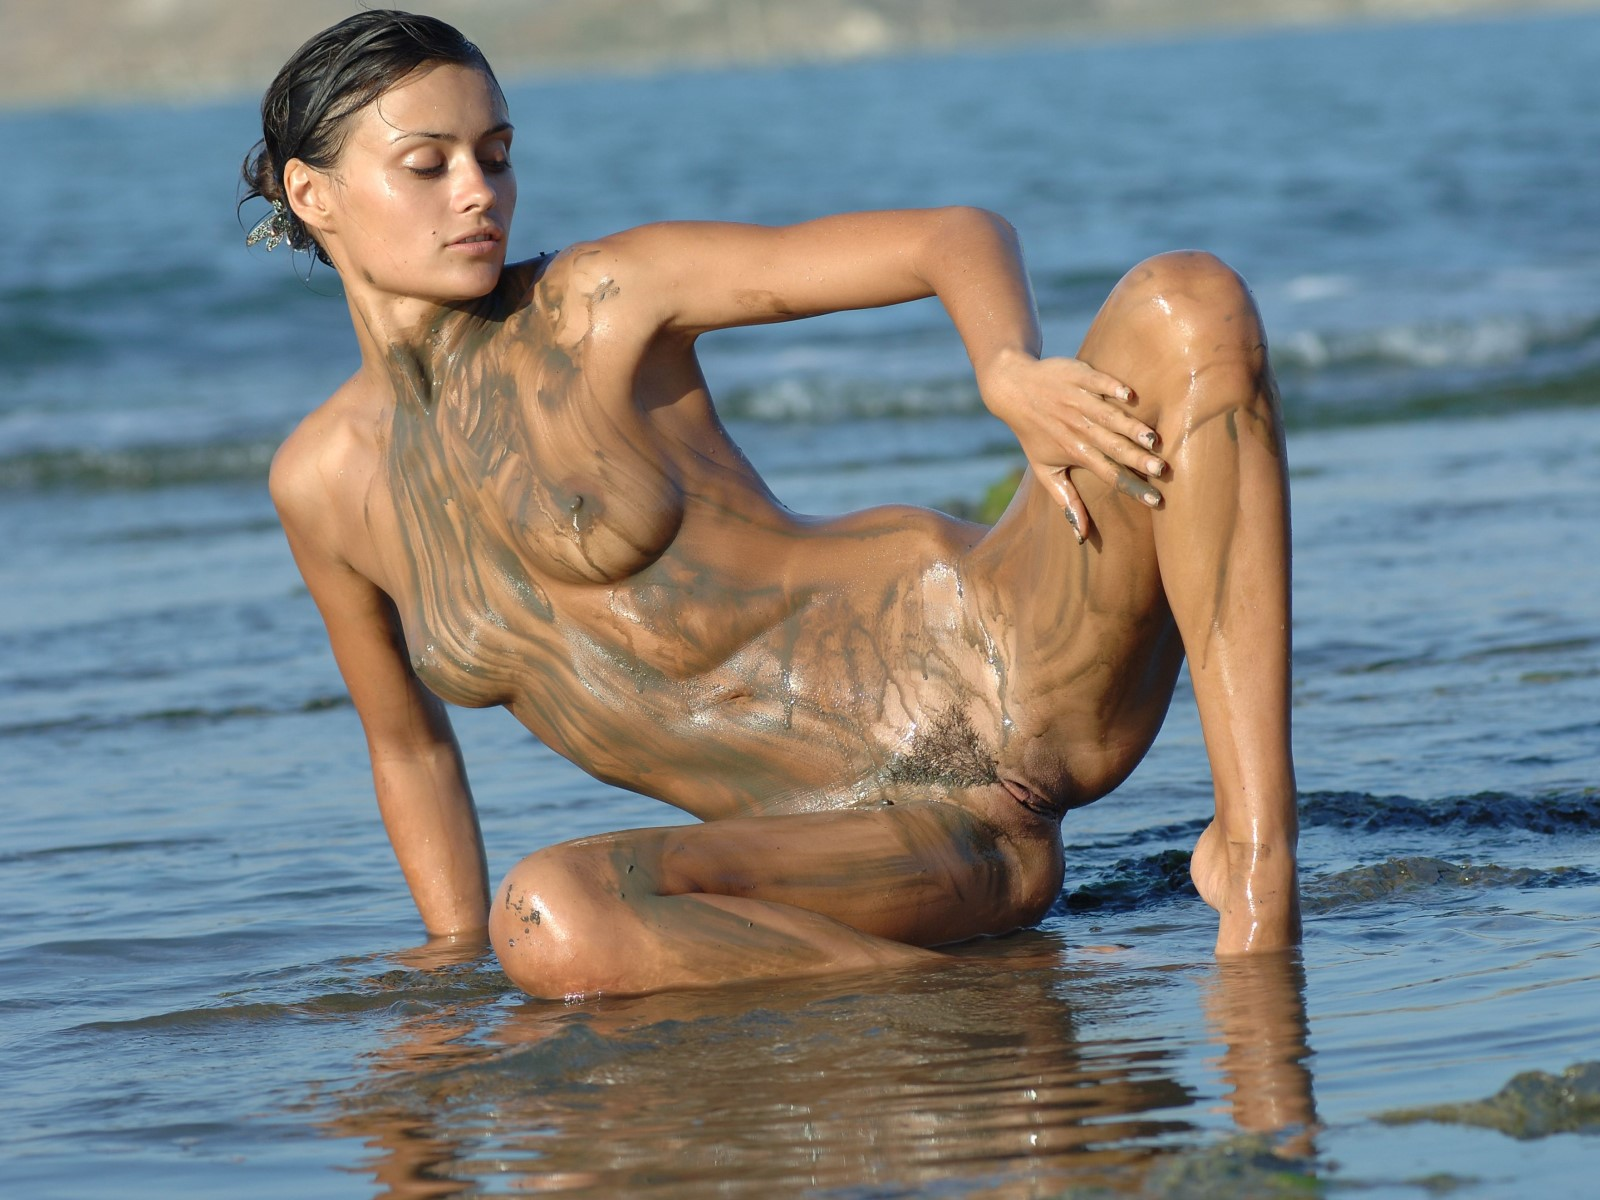 Nude Babe Playing With Mud